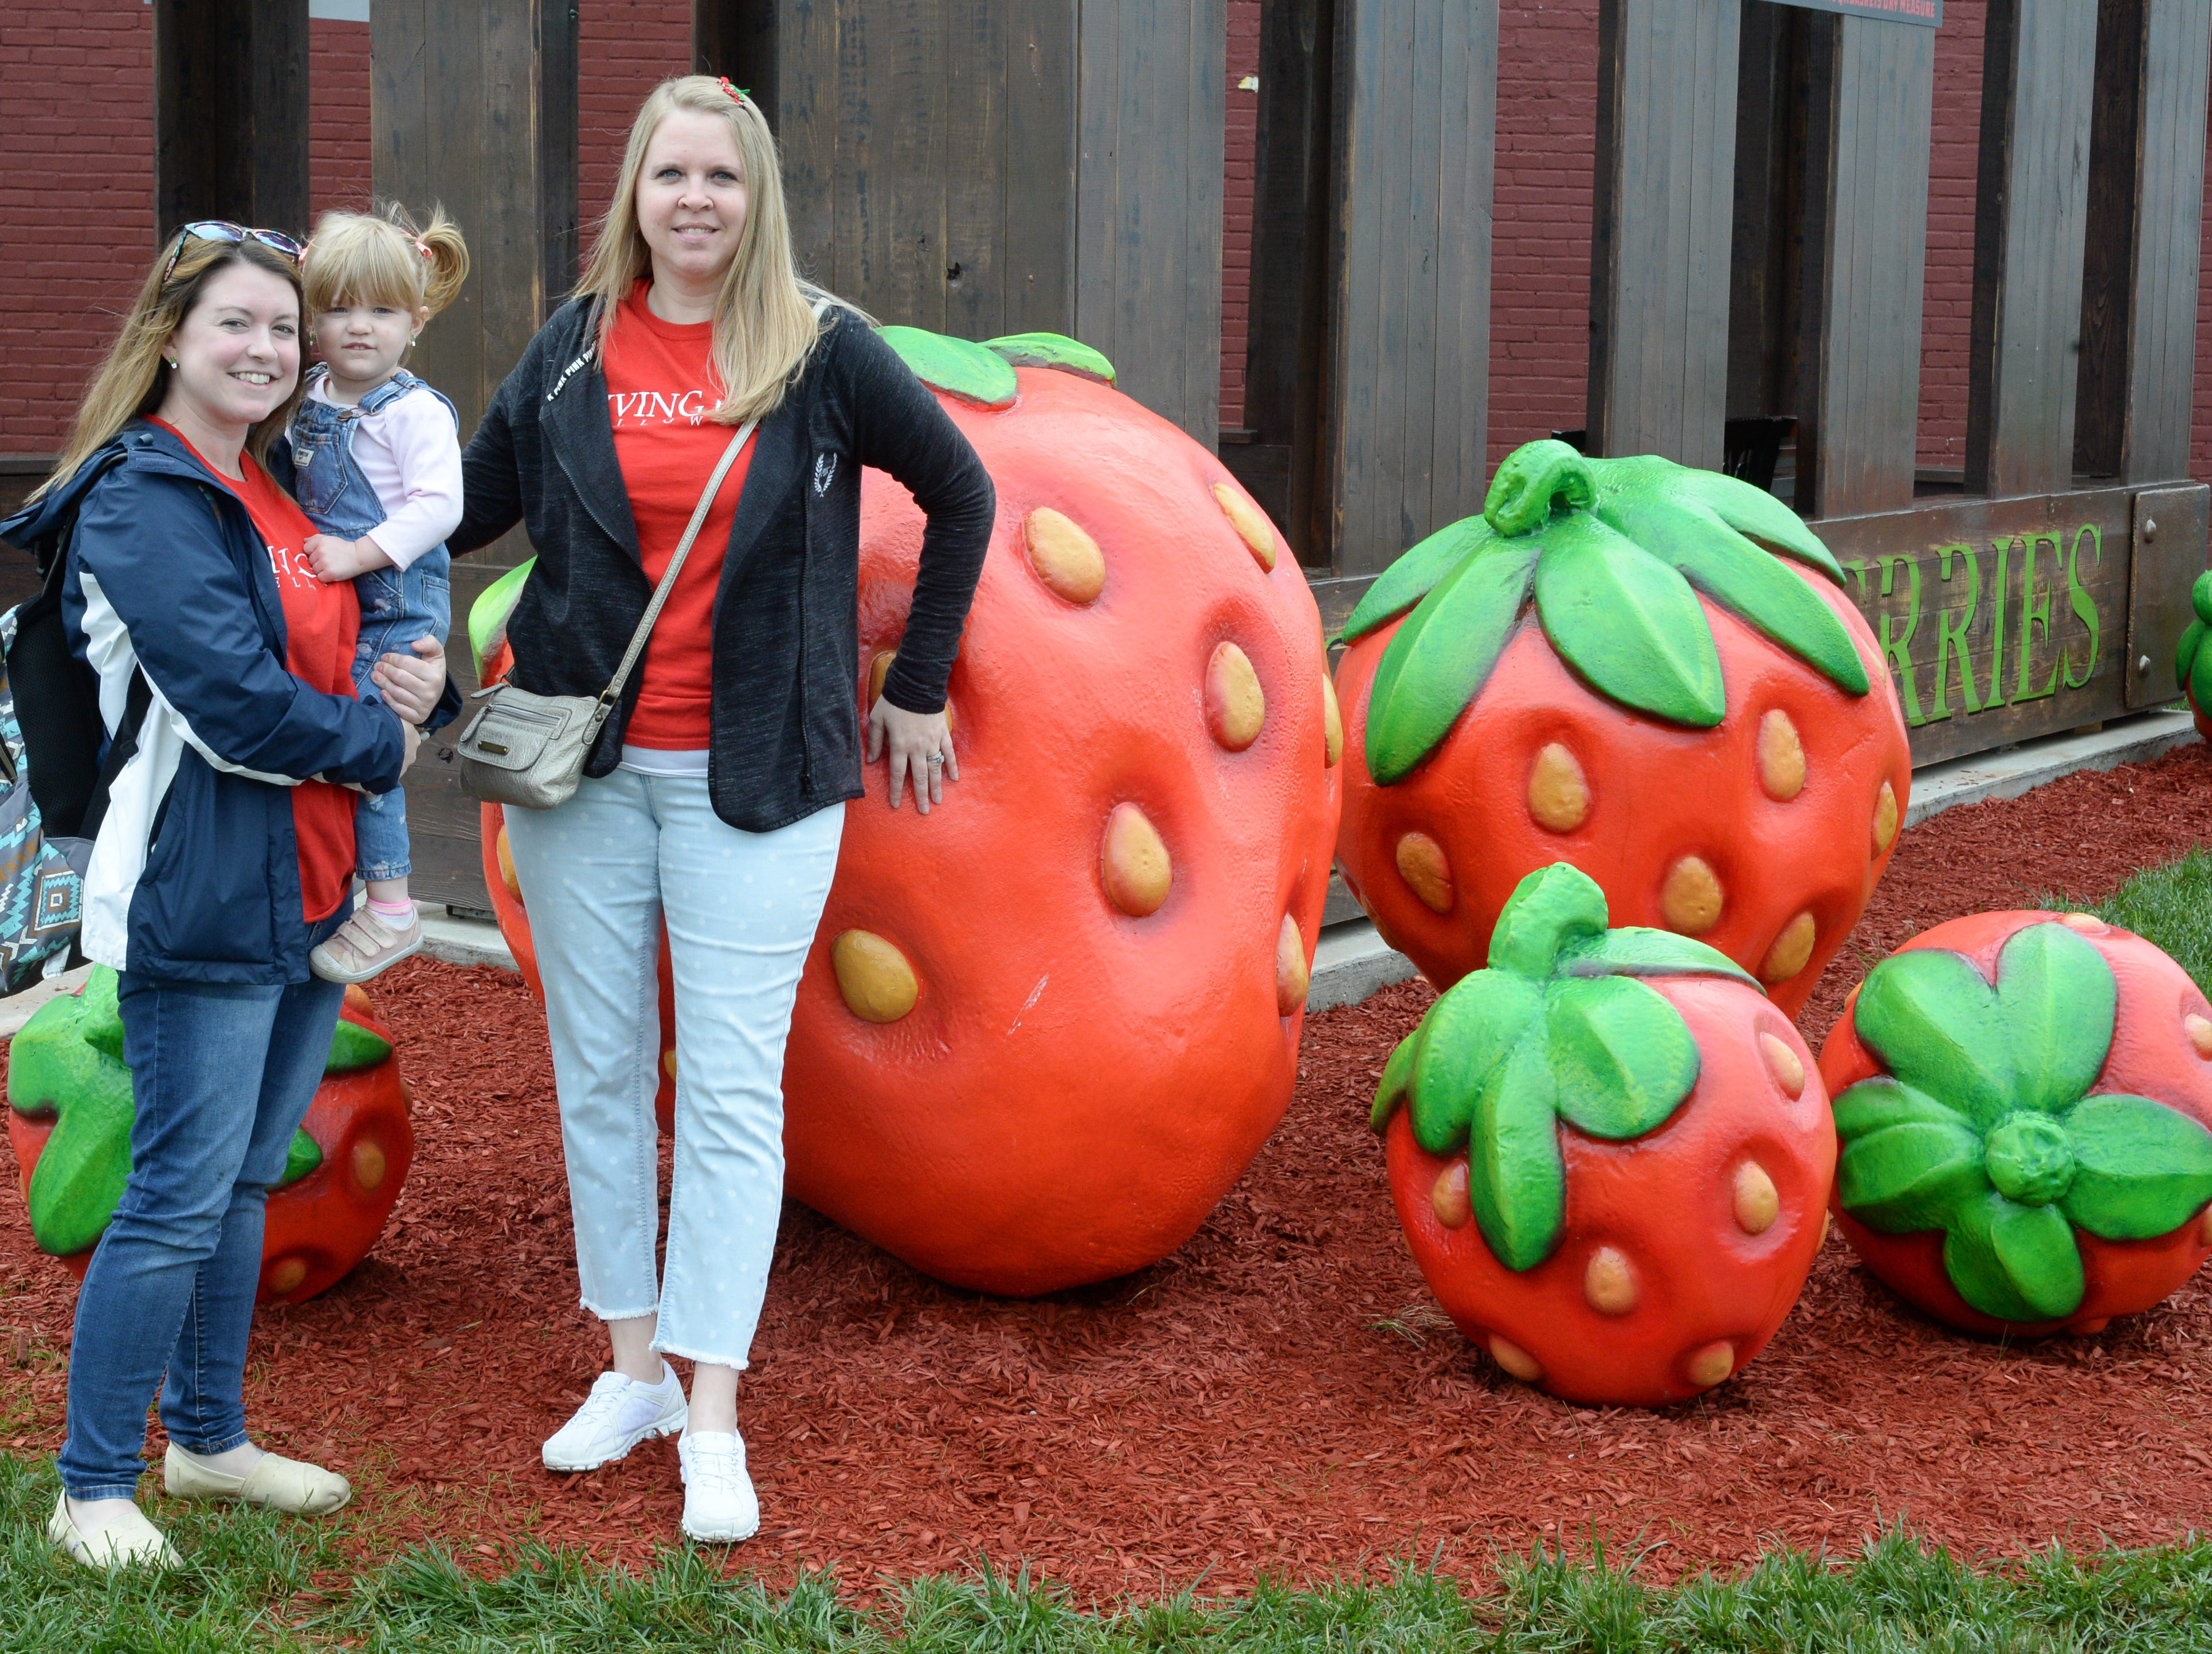 Attendees gathered for the 78th Annual Middle Tennessee Strawberry Festival presented by the Portland Chamber of Commerce in Portland on Saturday, May 11.